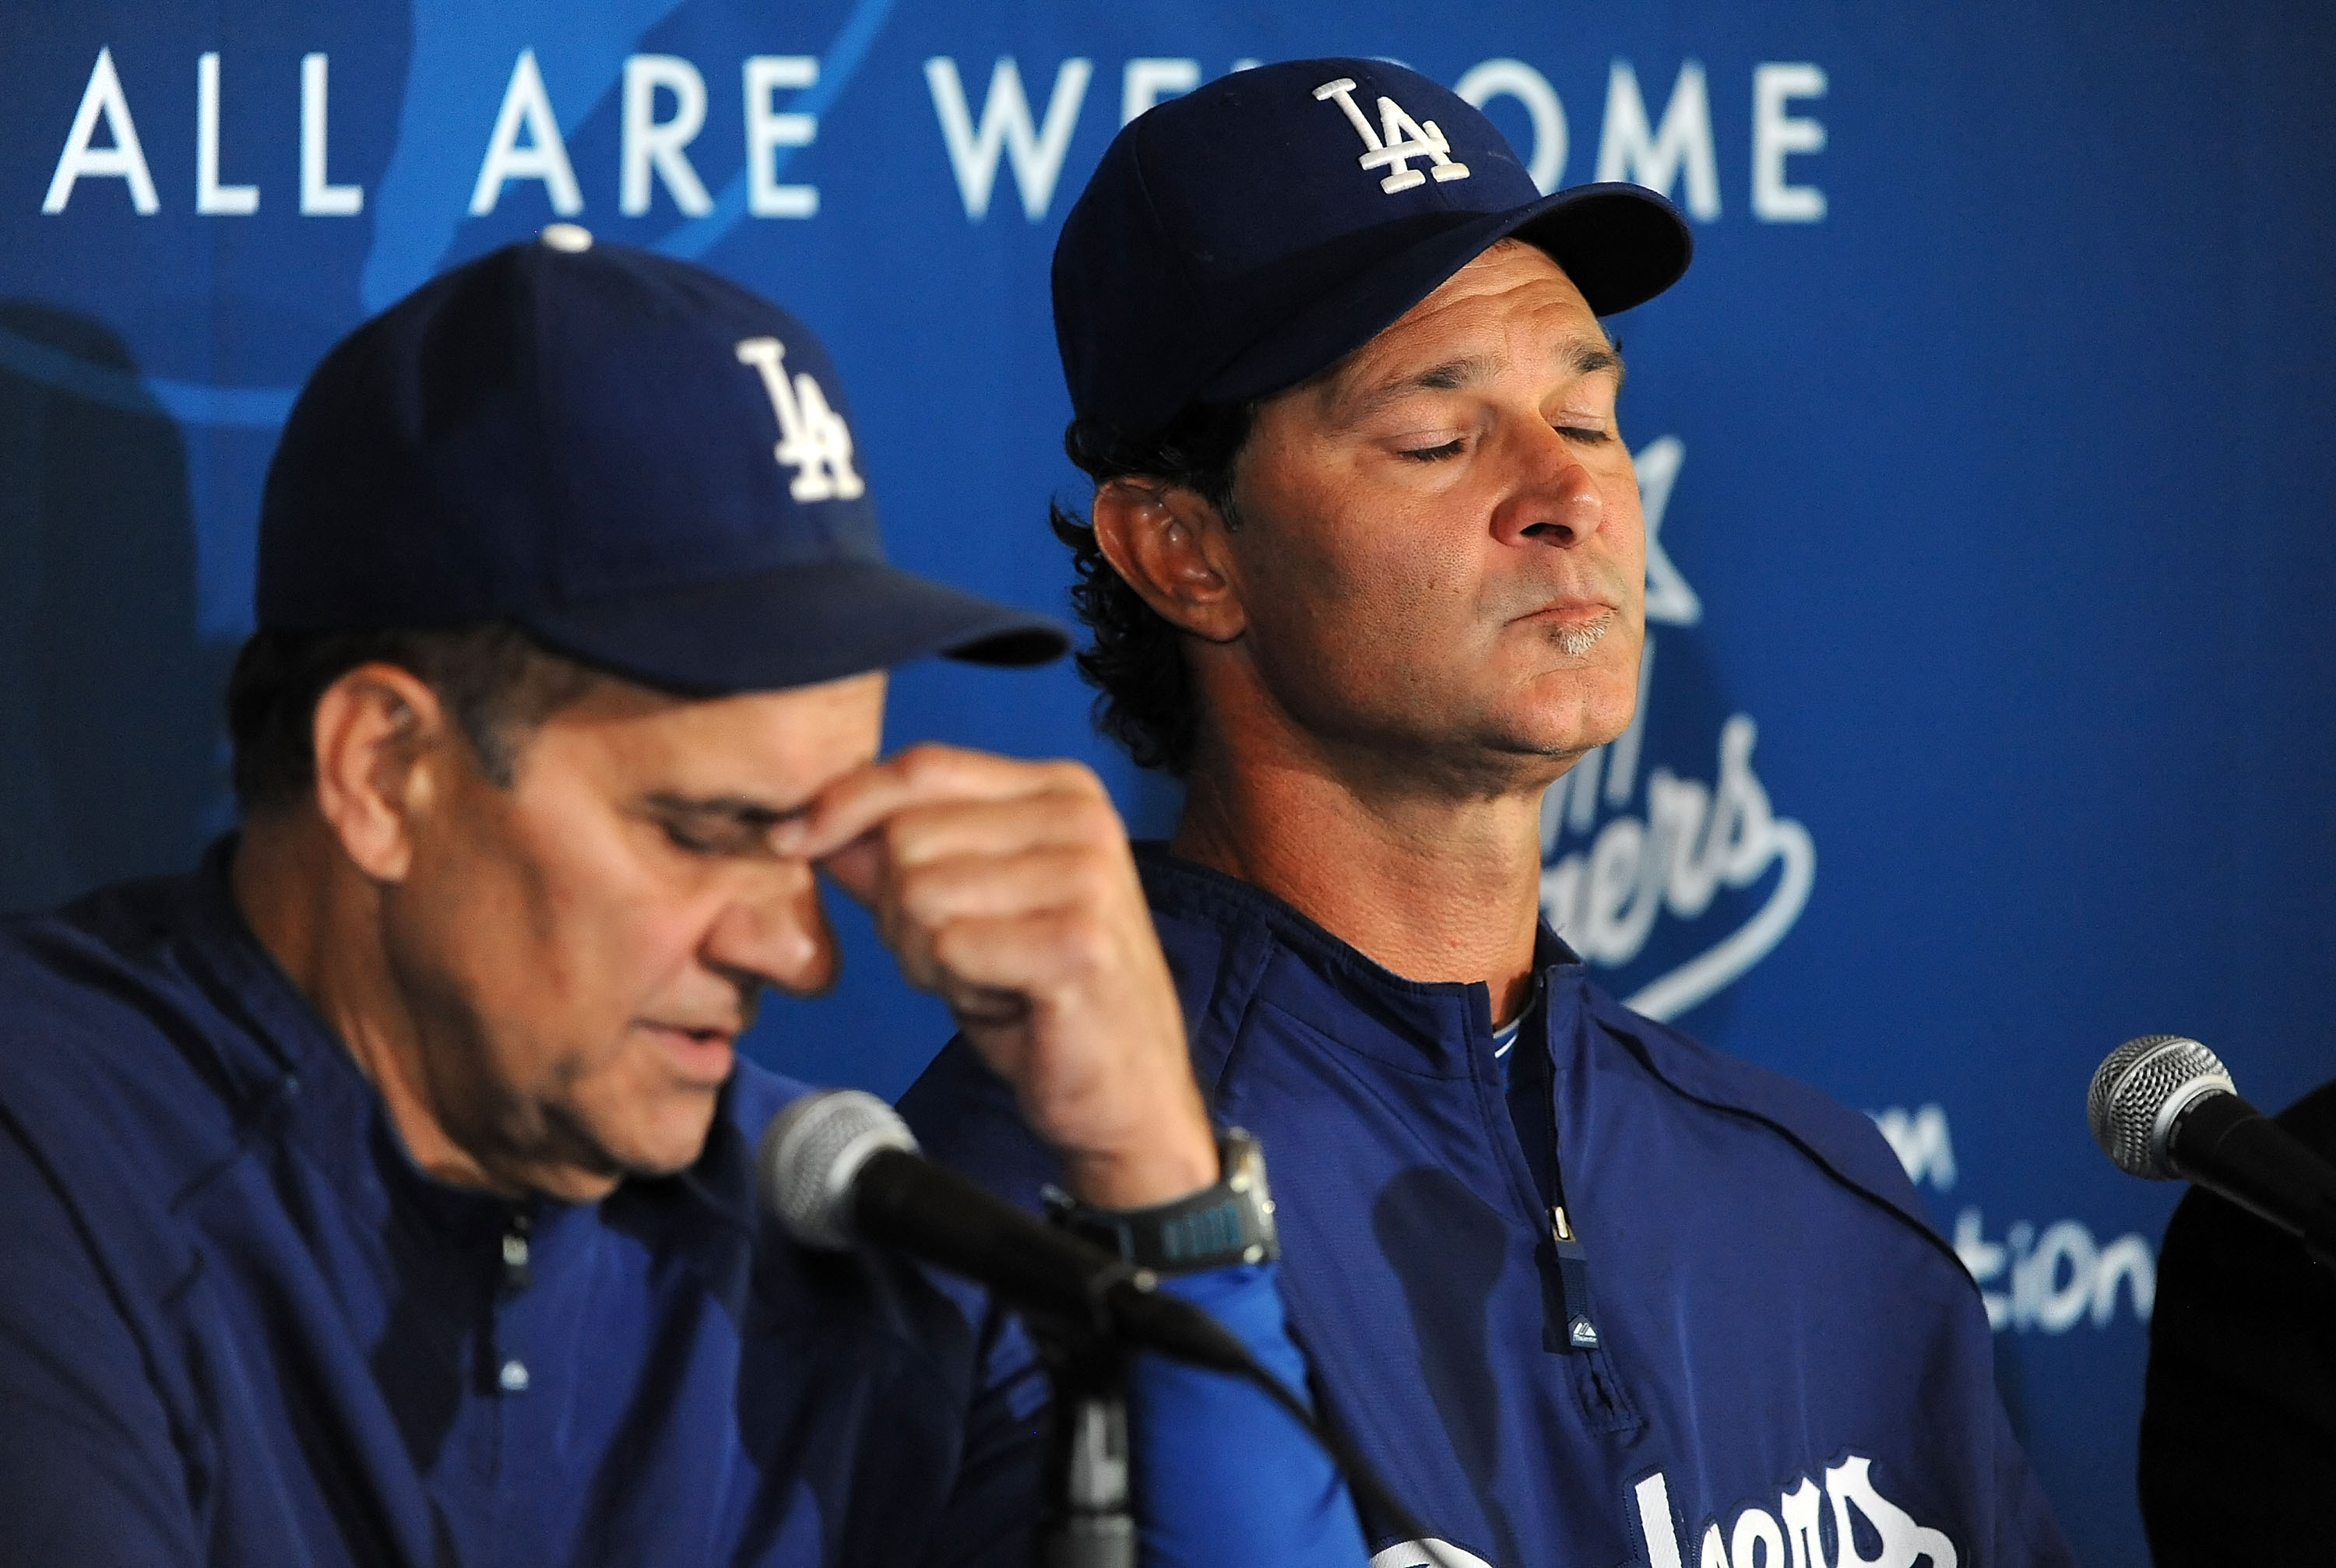 LOS ANGELES, CA - SEPTEMBER 17:  Manager Joe Torre (L) and coach Don Mattingly of the Los Angeles Dodgers attend a press conference announcing that Mattingly will manage the Dodgers in 2011 after Torre retires at Dodger Stadium on September 17, 2010 in Lo